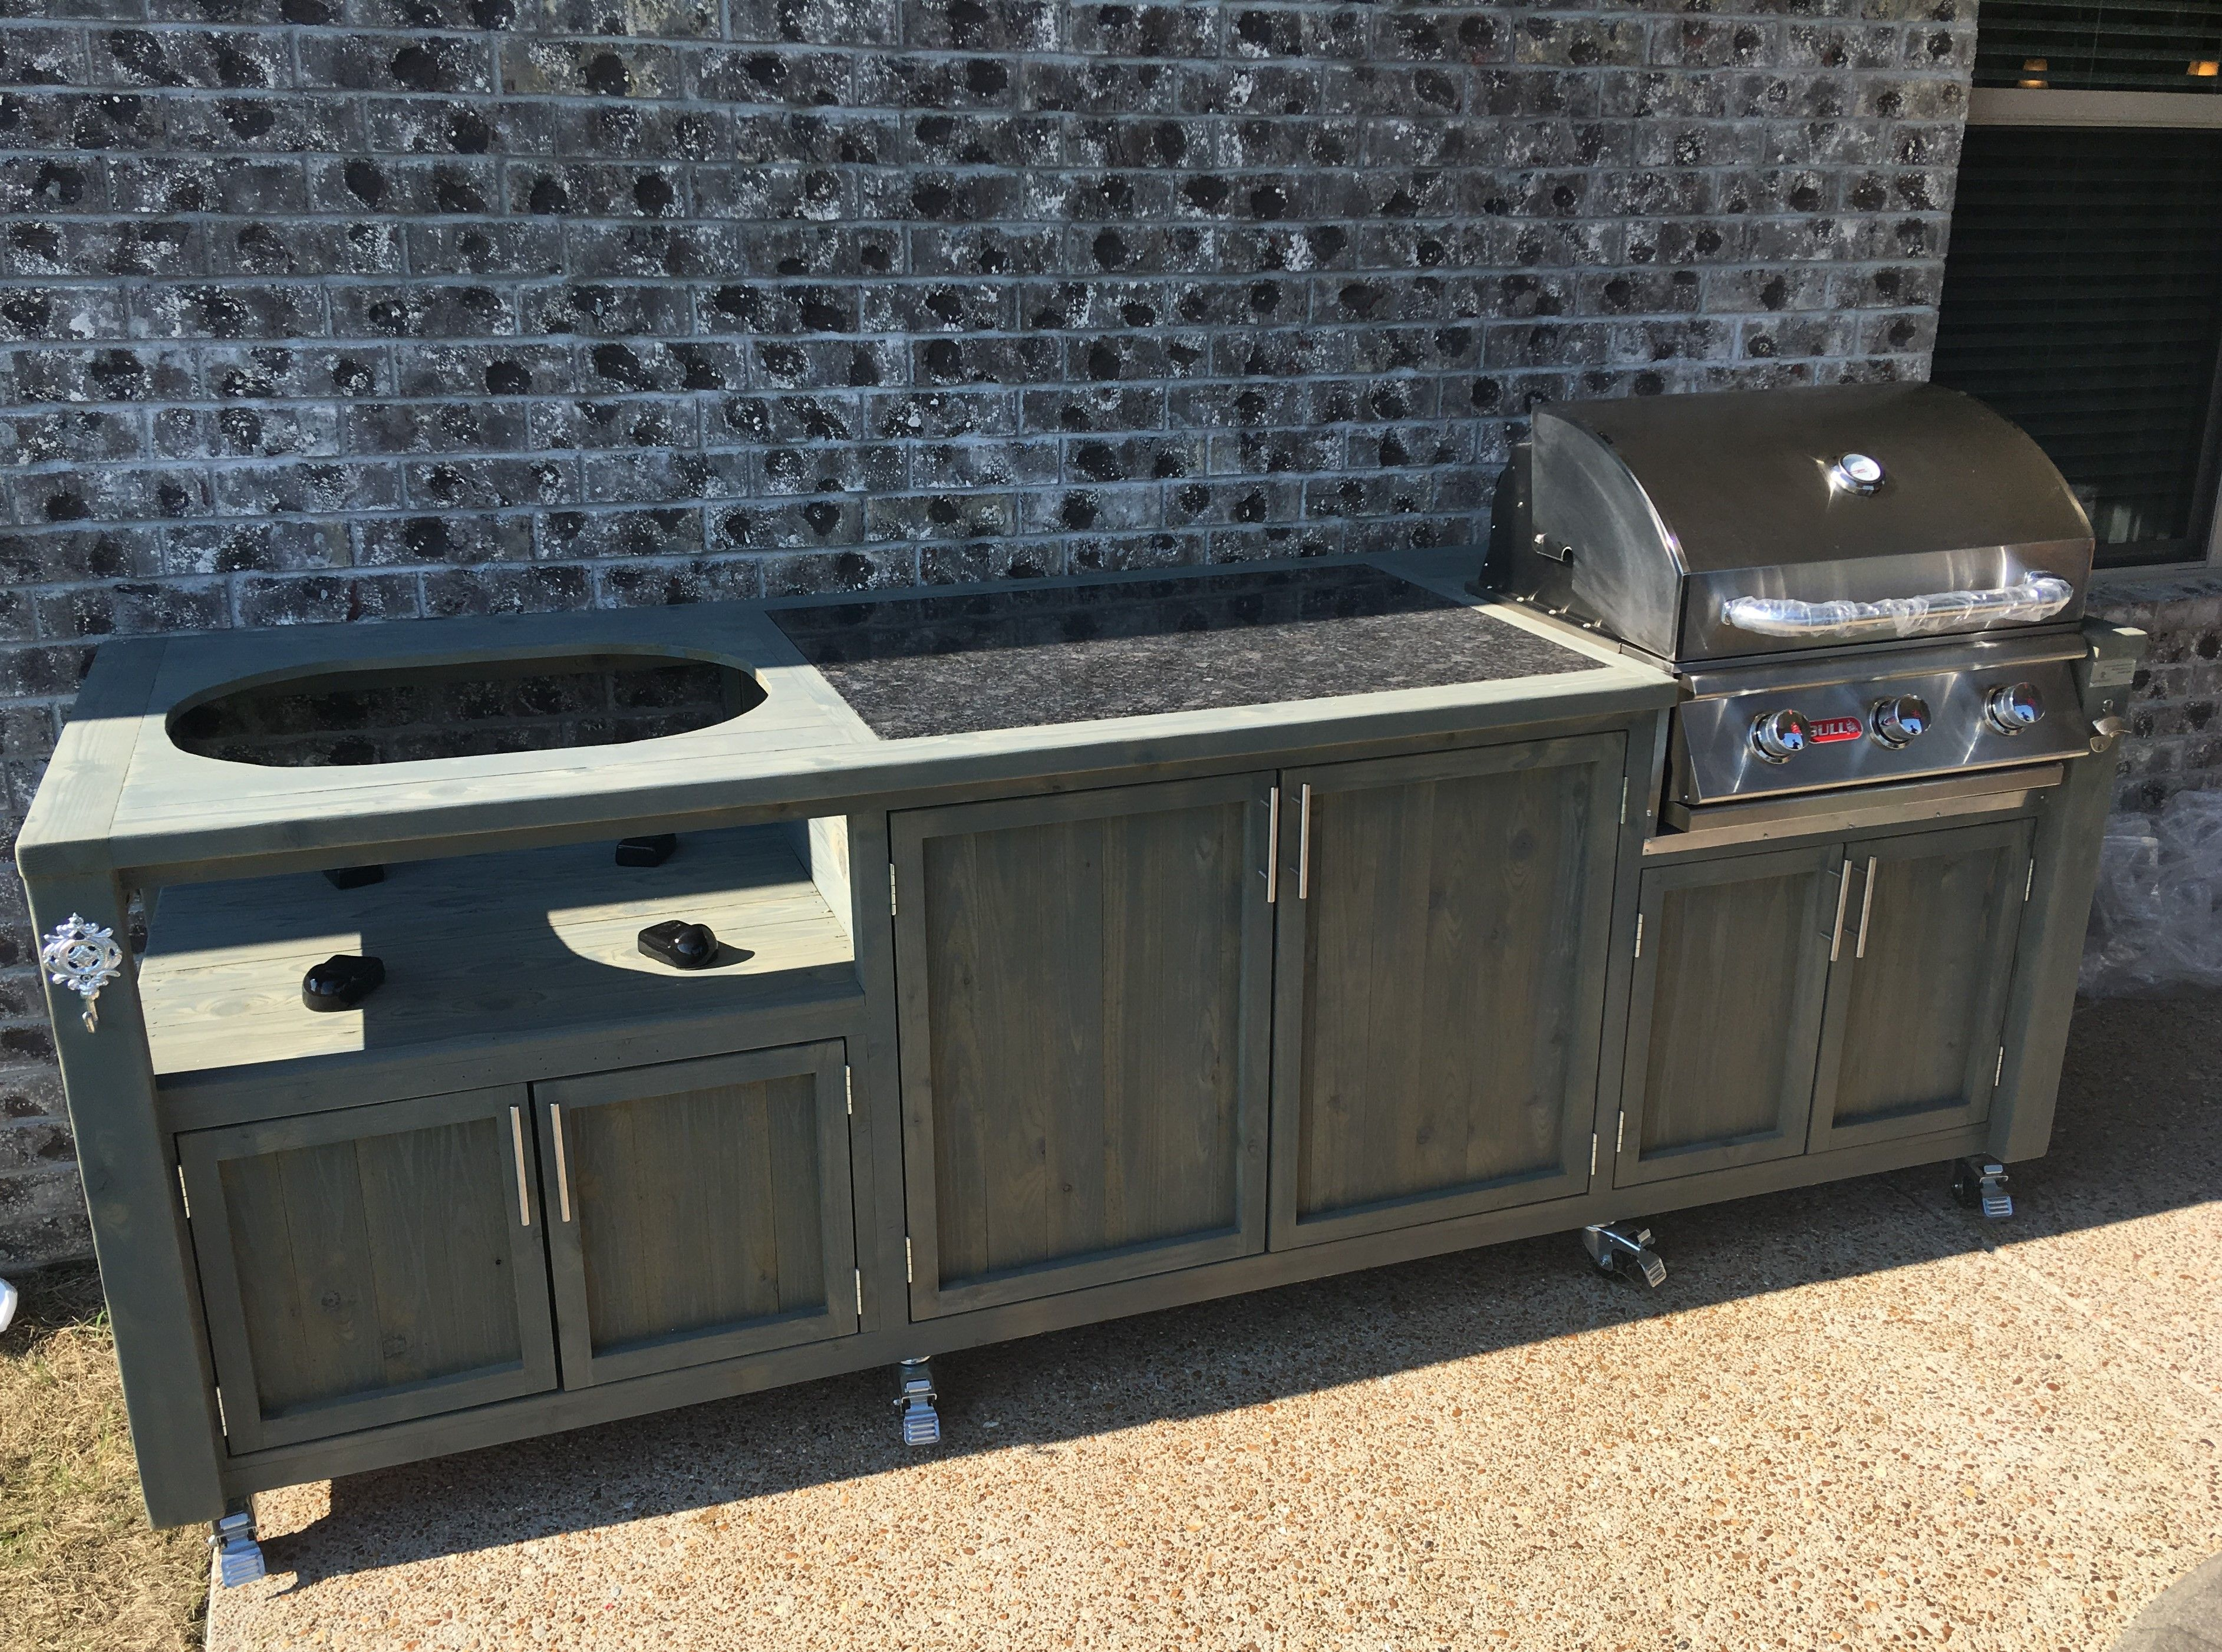 Gasgrill Küche Indoor Dual Grill Cabinet For Bull Gas Grill Primo Kamado Outdoor